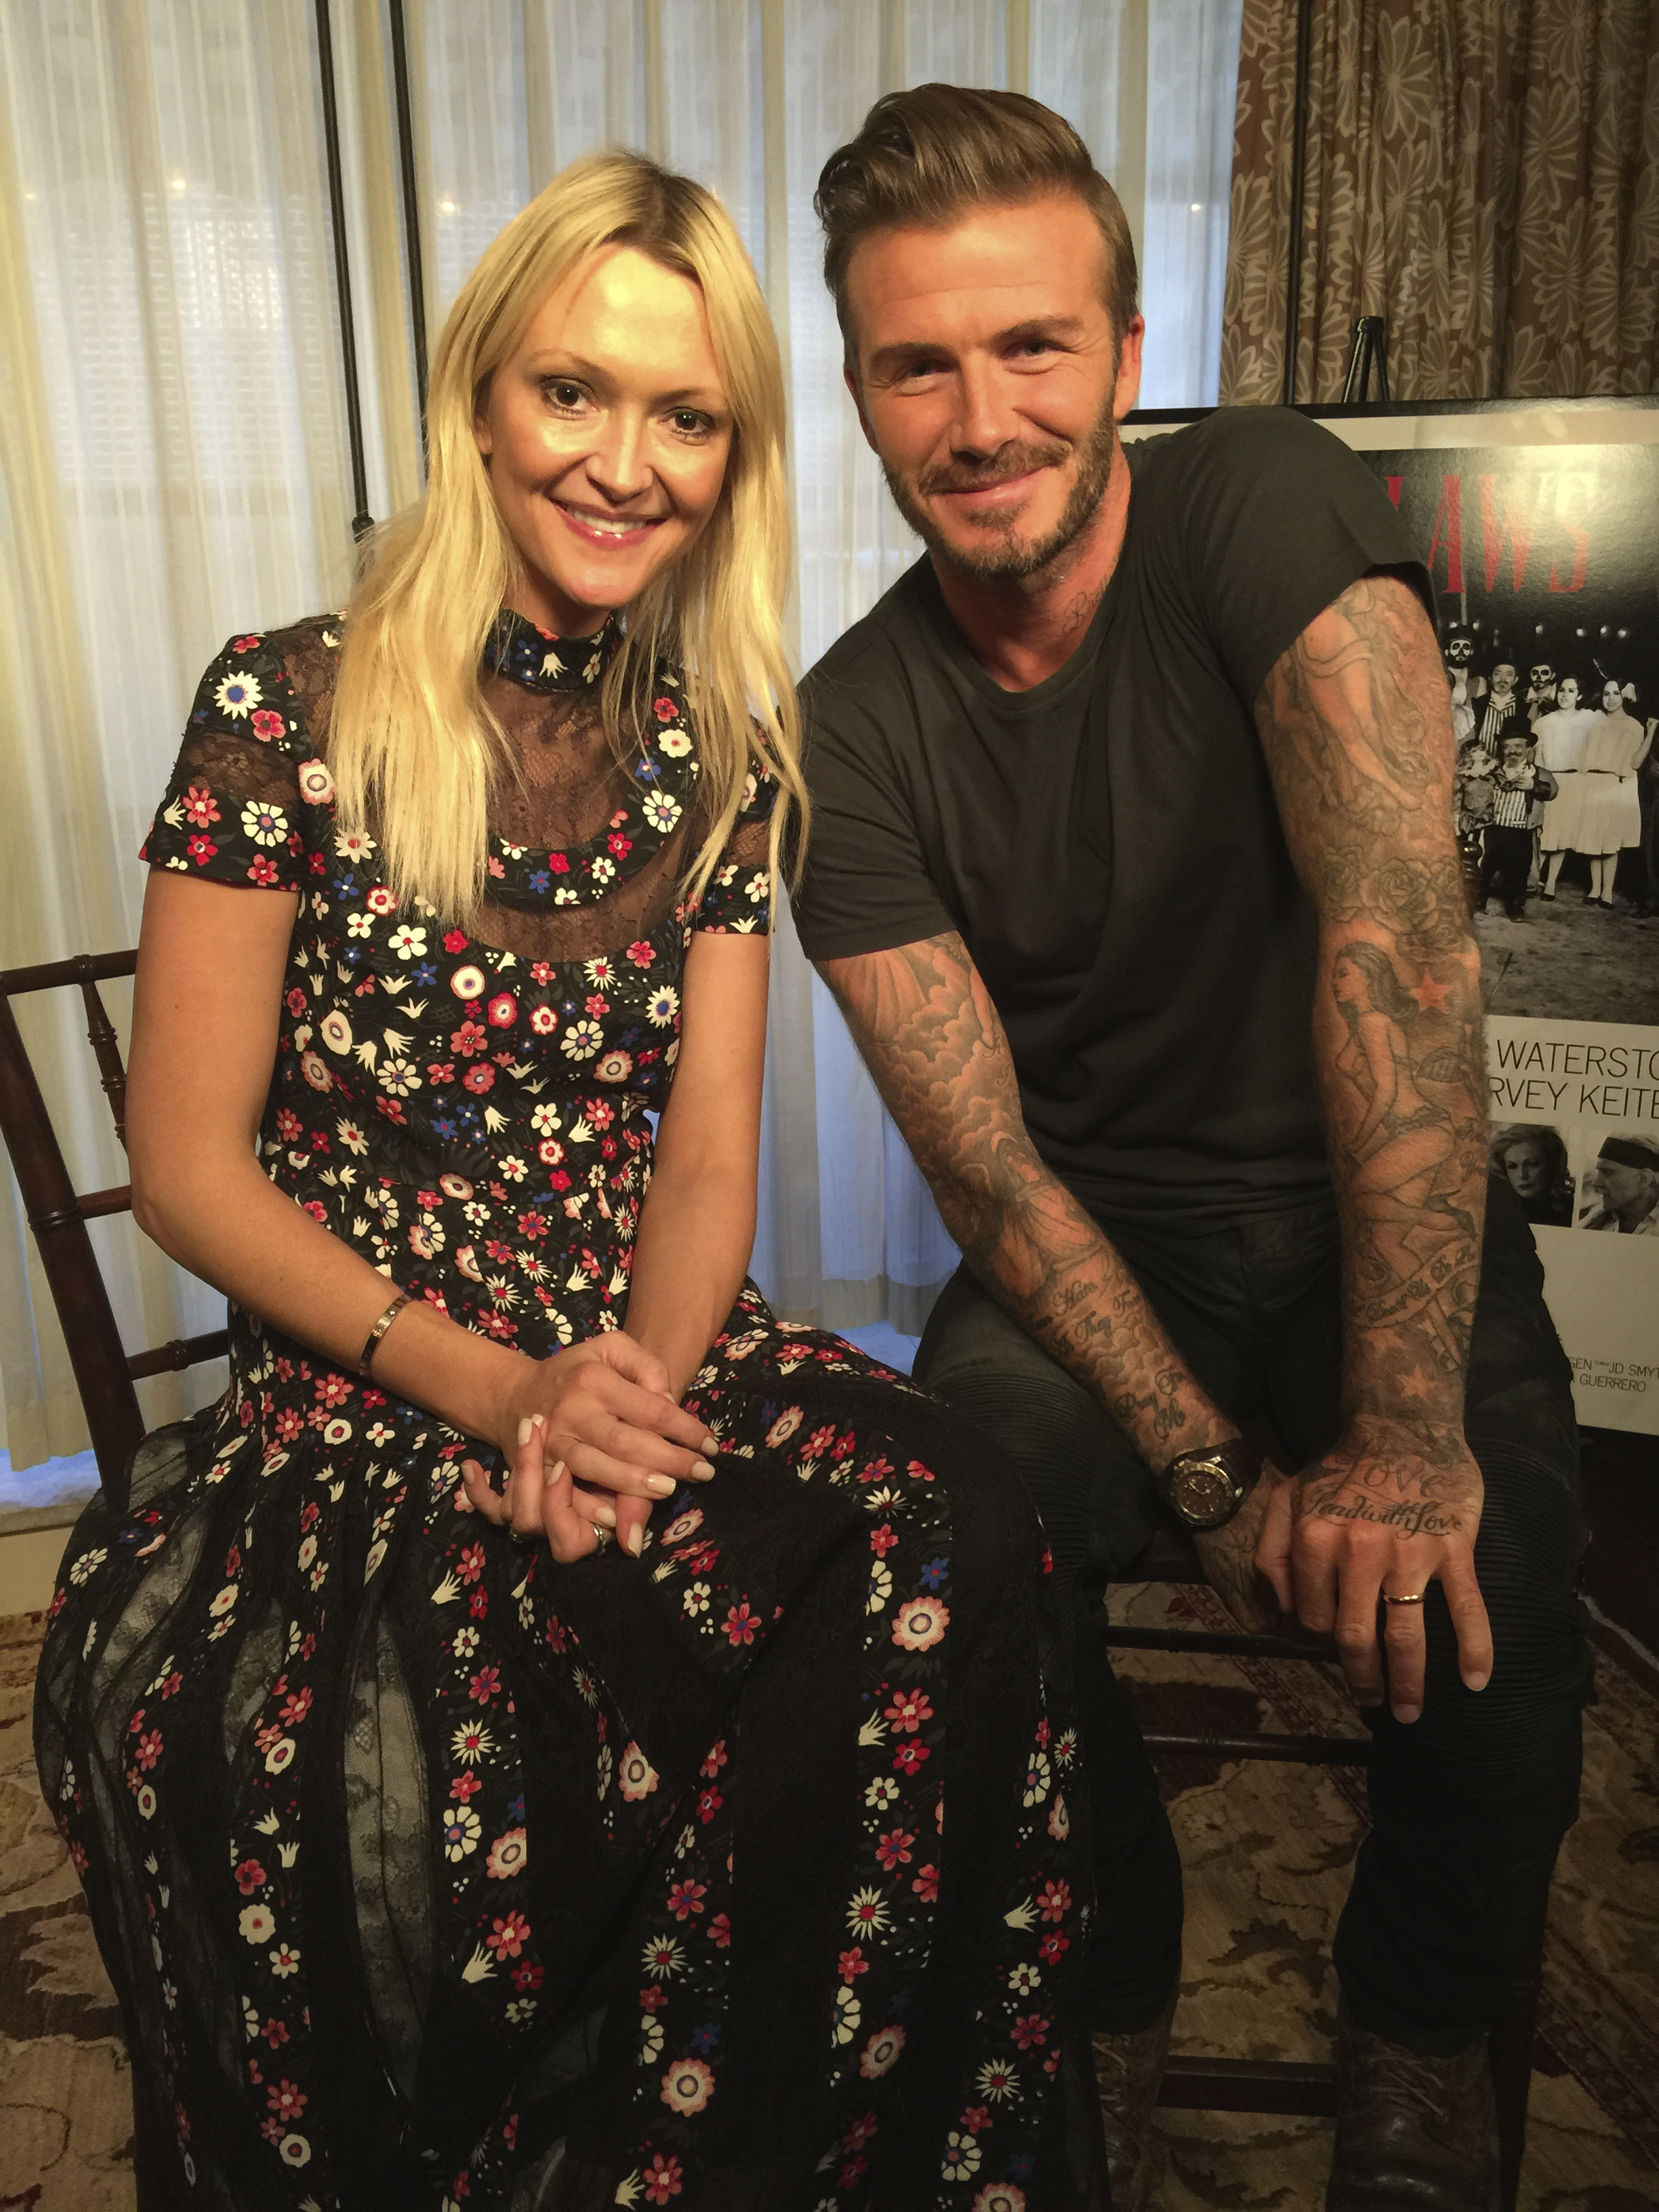 Zanna and David Beckham